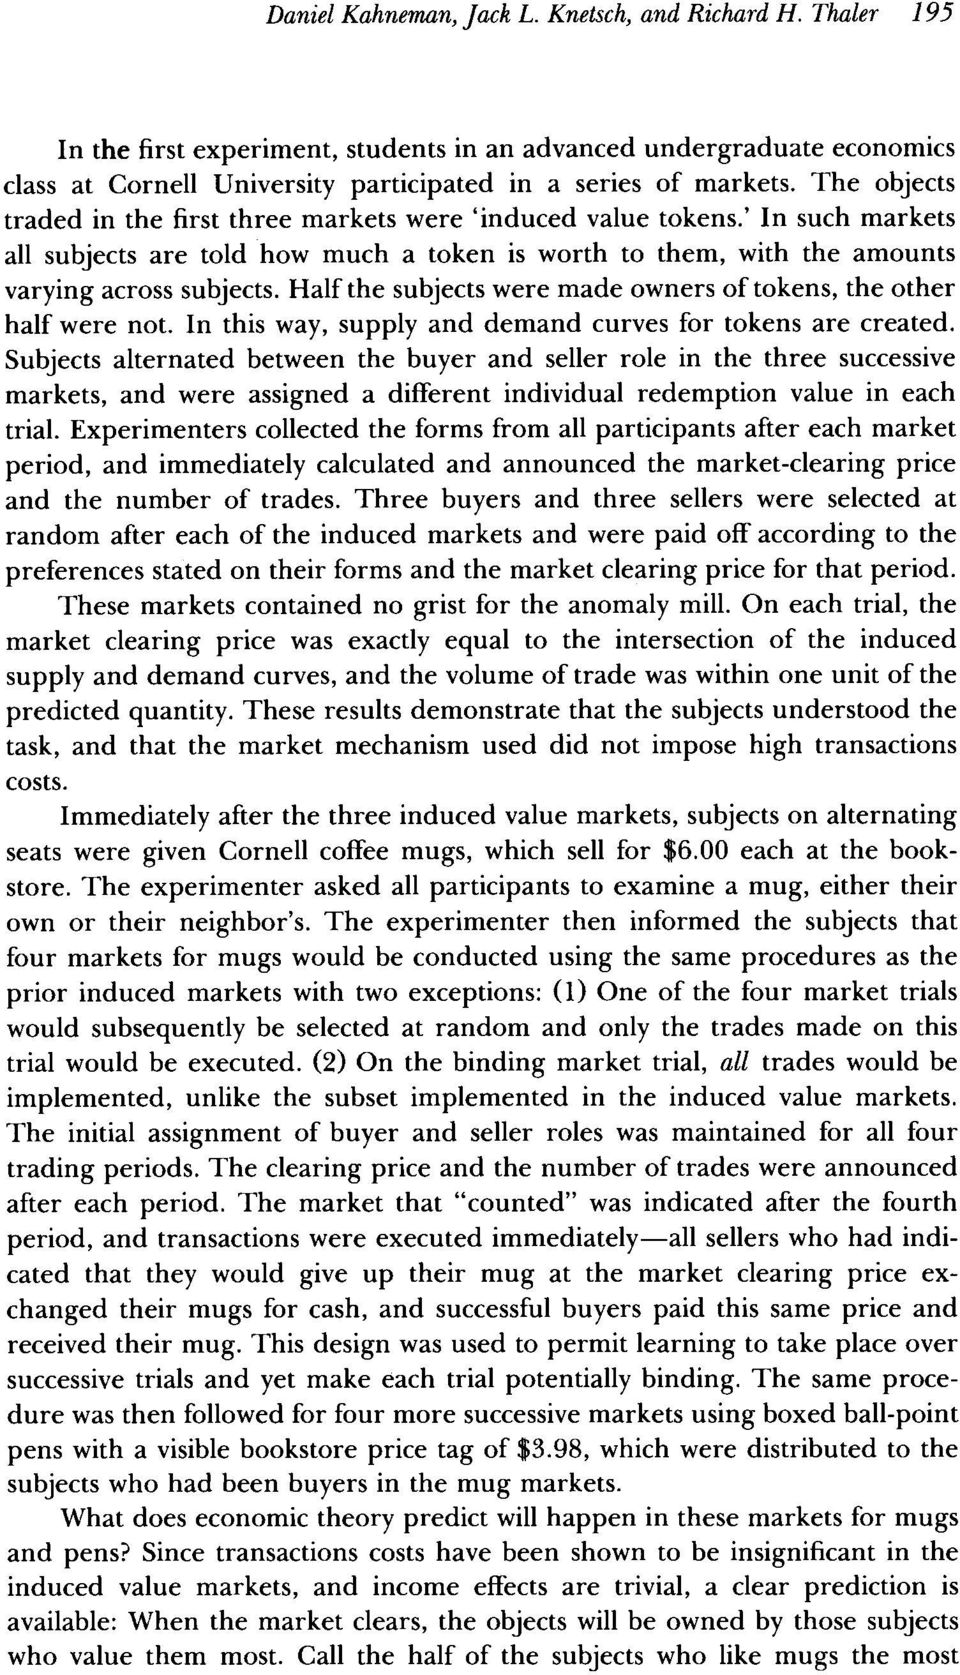 Half the subjects were made owners of tokens, the other half were not. In this way, supply and demand curves for tokens are created.